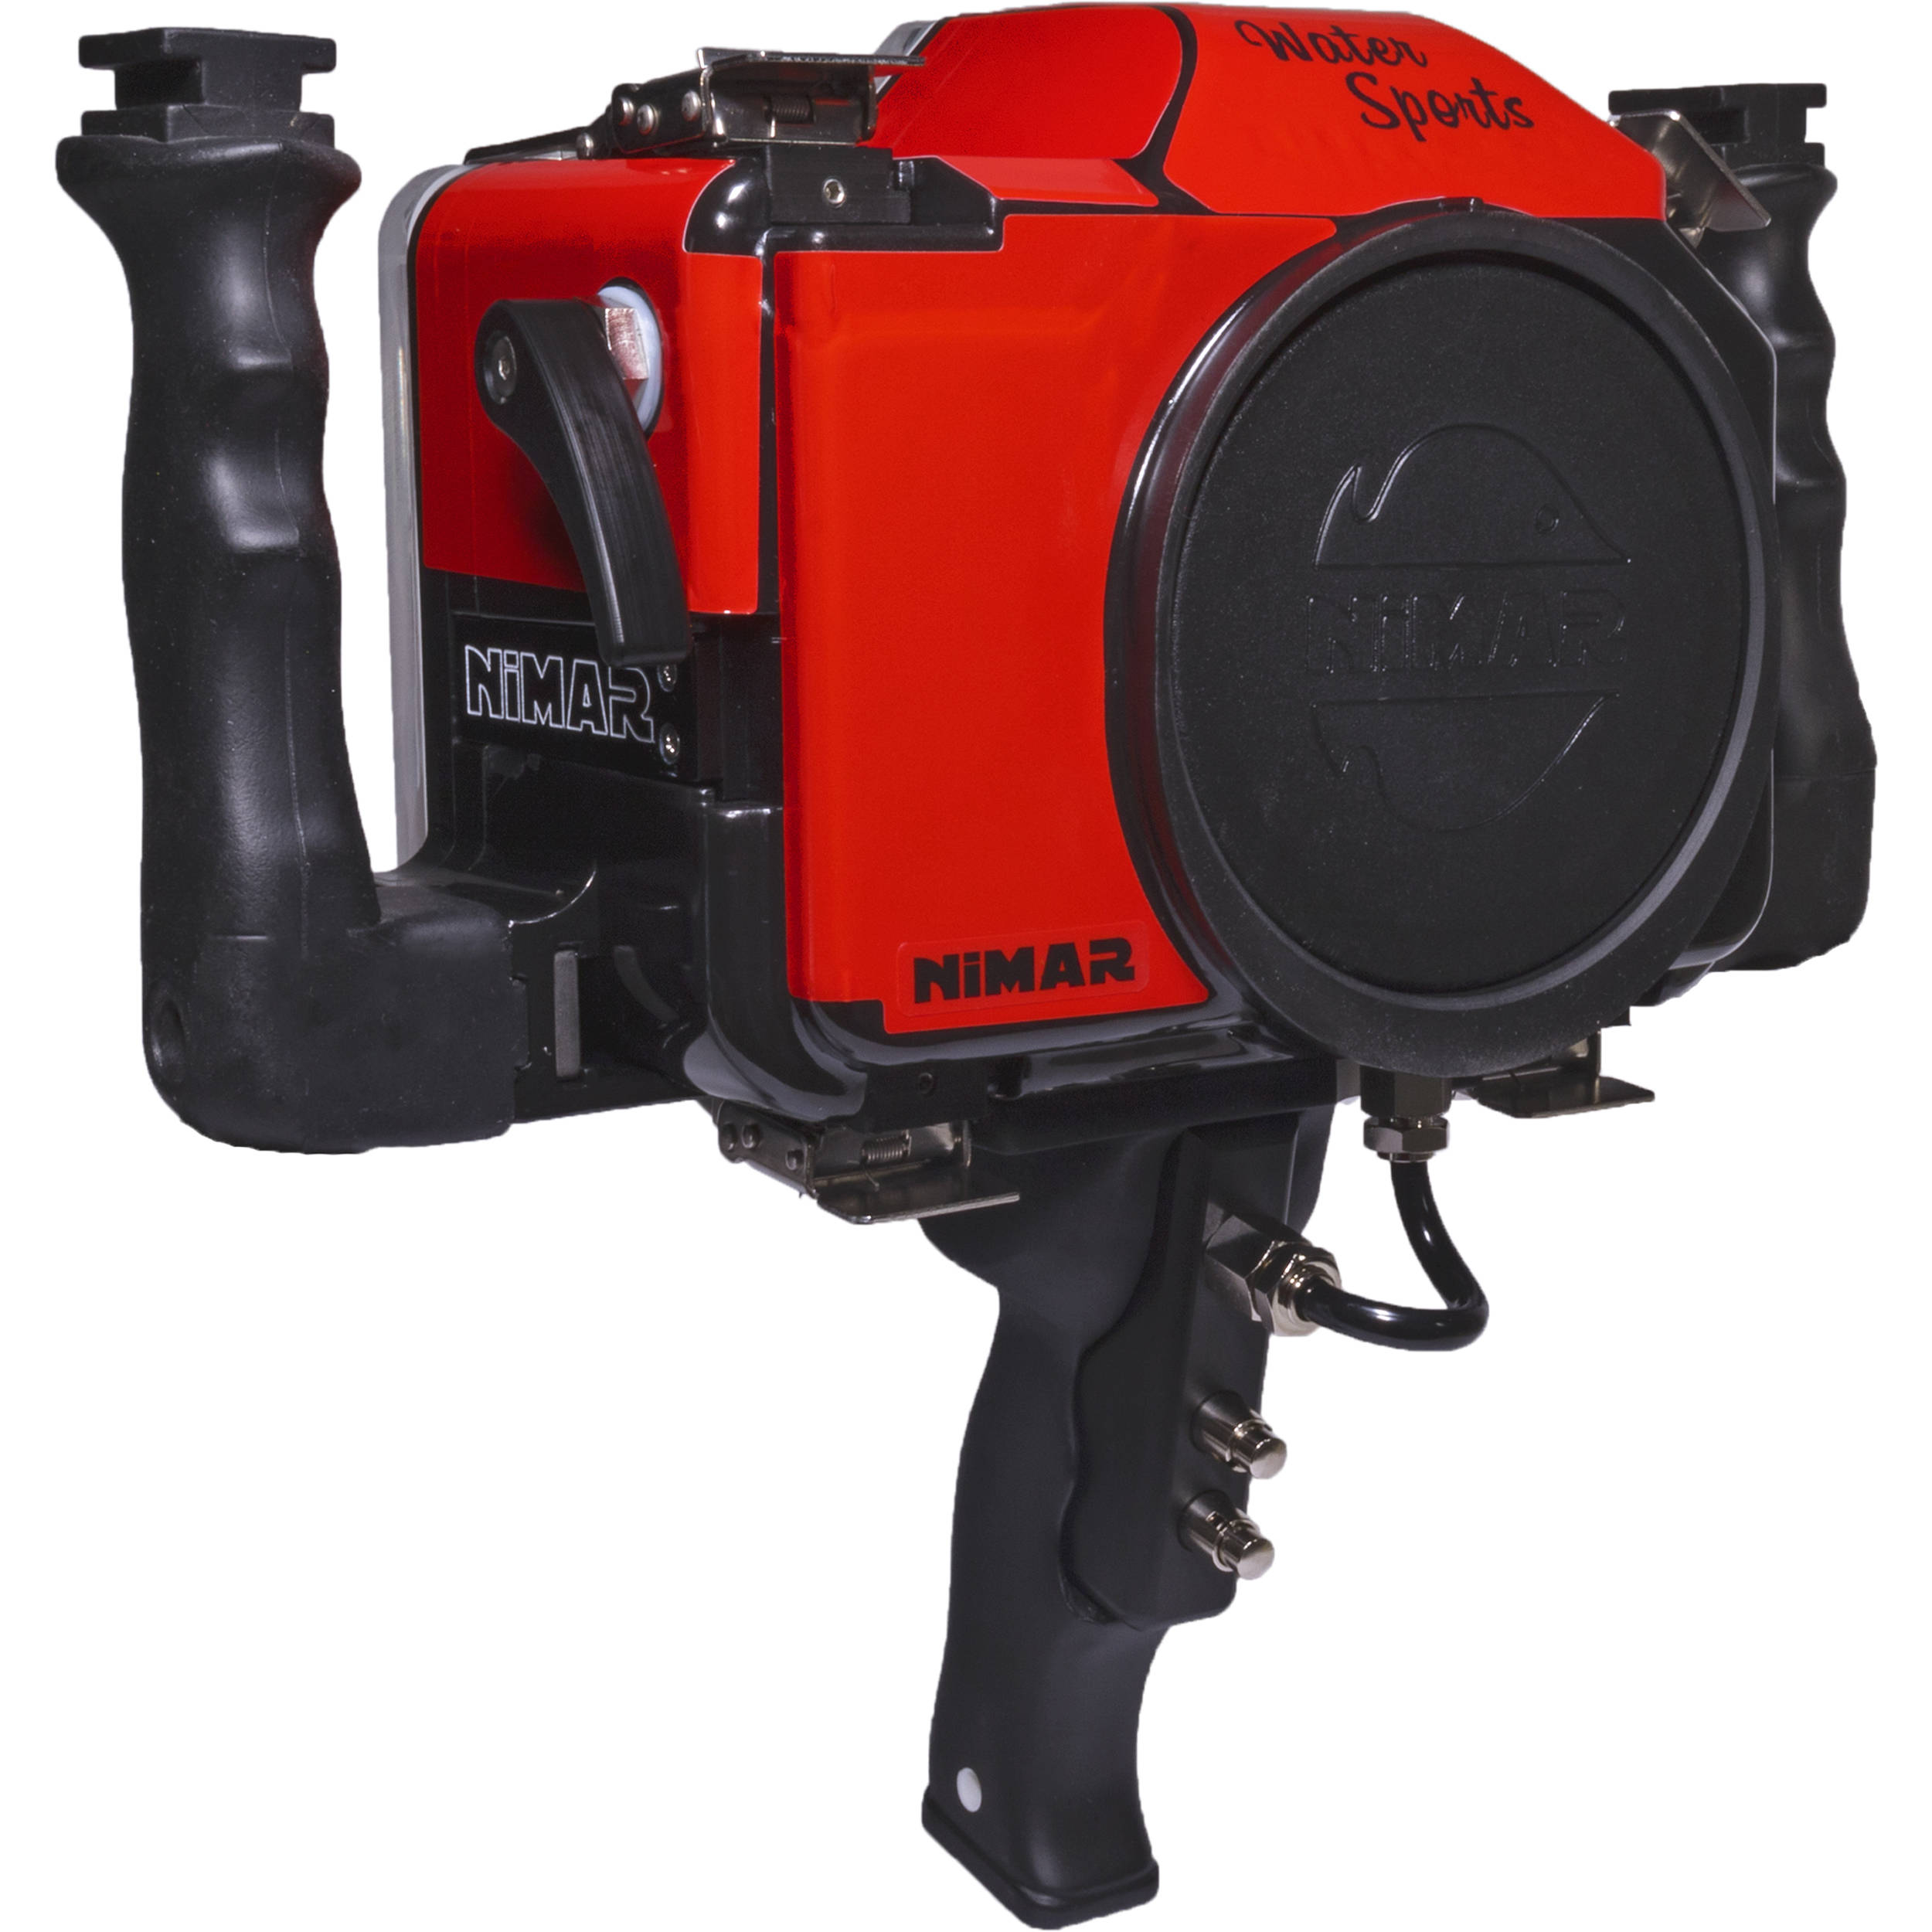 Nimar Water Sports Camera Housing for Sony a7III, a7RIII & a9 with Side &  Pistol Grips